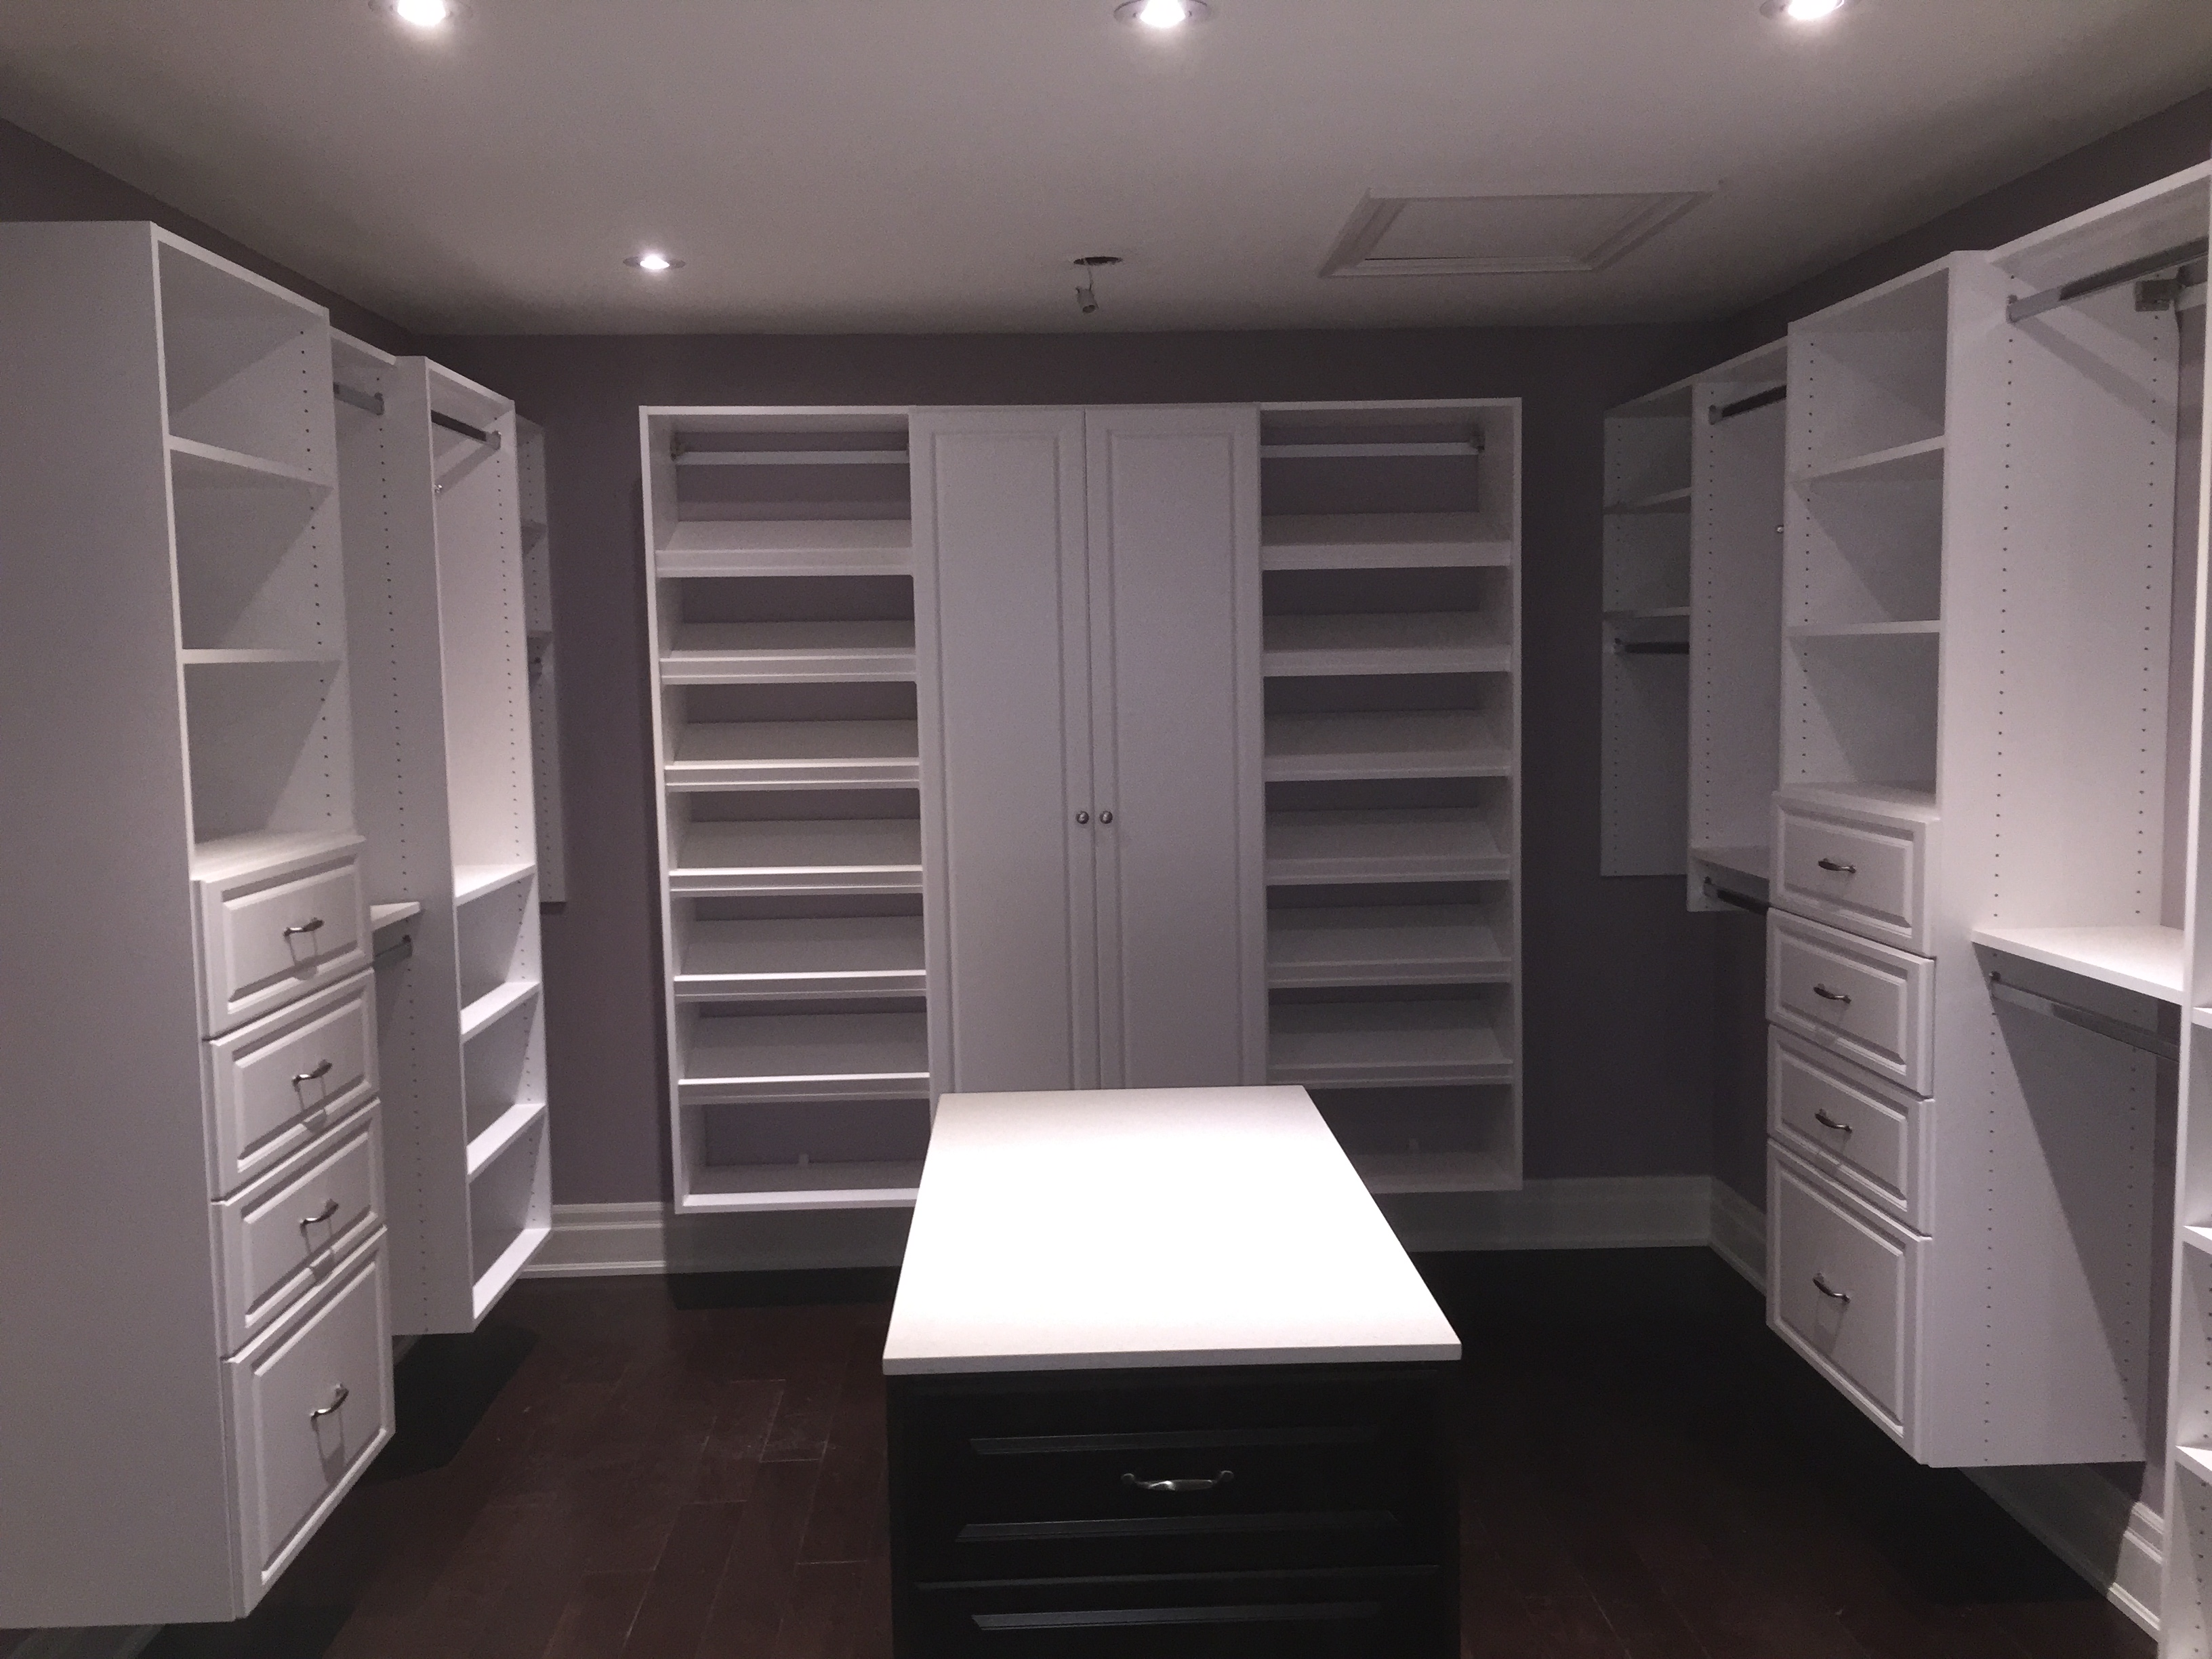 Closet Remodel Before And After Photo With 2217x3311 Px For Your Design